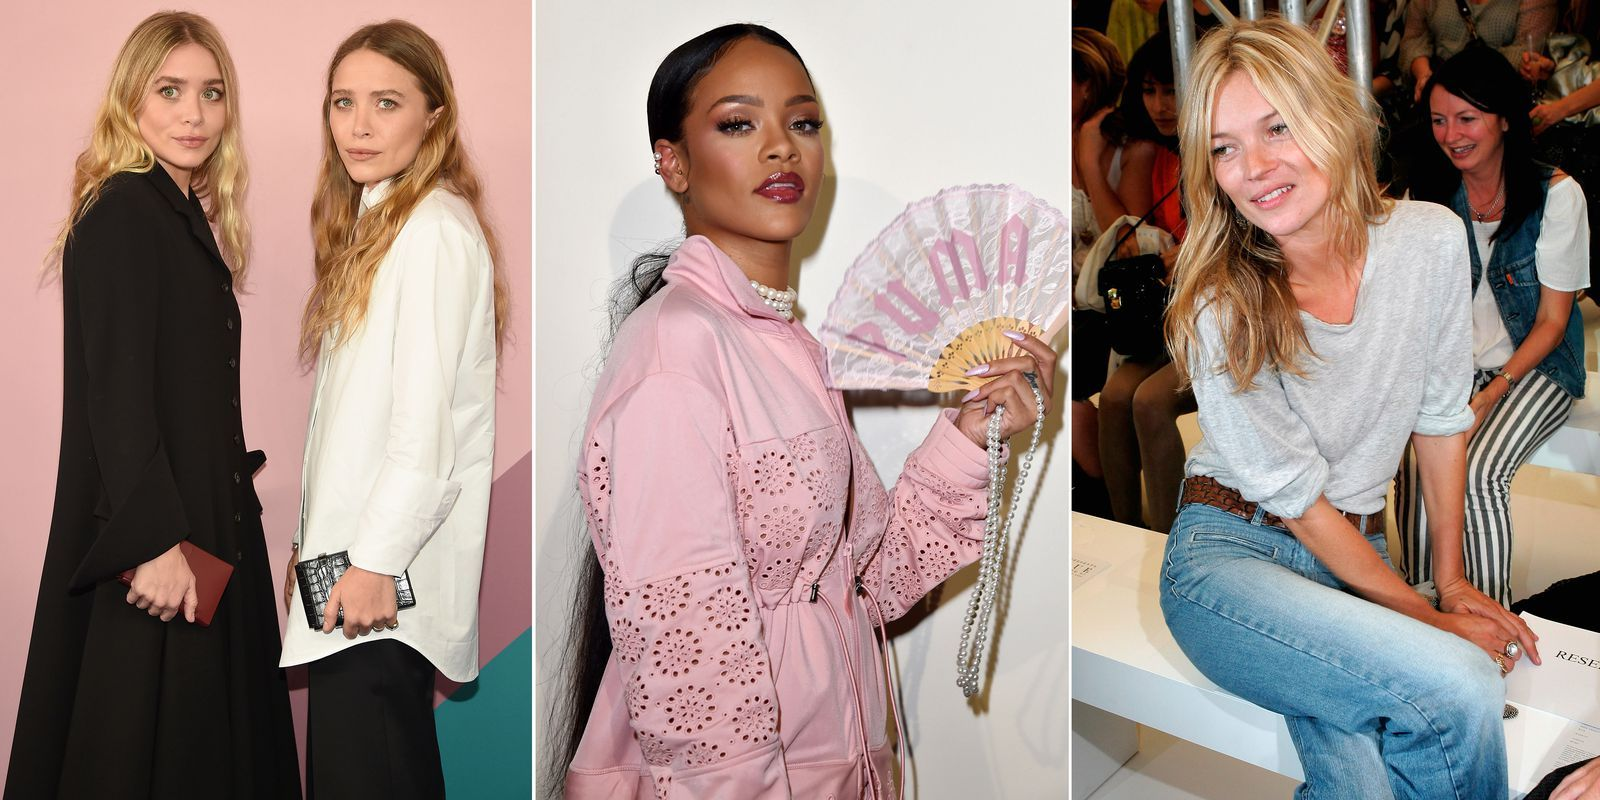 The Most Successful Celebrity Fashion Lines Fashion Line Fashion Celebrities